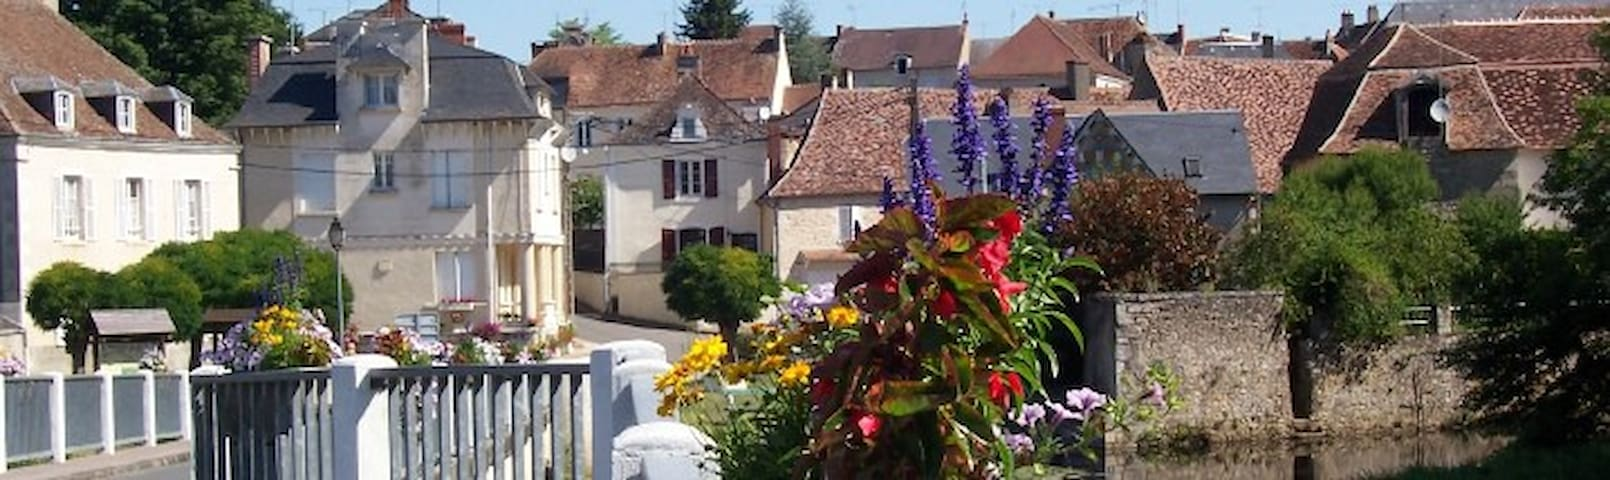 Tranquil central location, Belabre, Indre, France